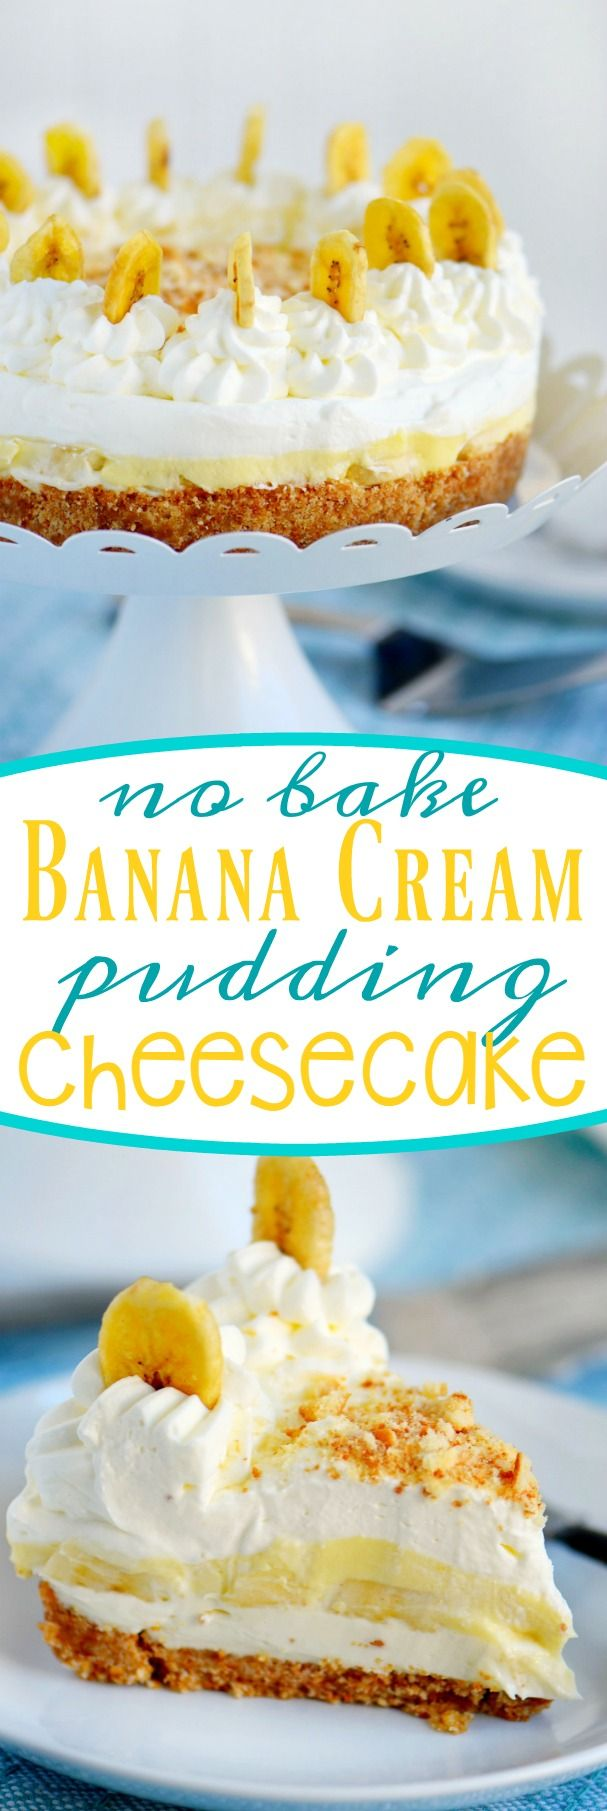 Get ready to delight friends and family with this stunning No Bake Banana Cream Pudding Cheesecake! A fabulous cookie crust, rich cheesecake, fresh bananas, creamy pudding and fresh whipped cream create an explosion of flavors and textures in your mouth. Each bite is better than the last!: